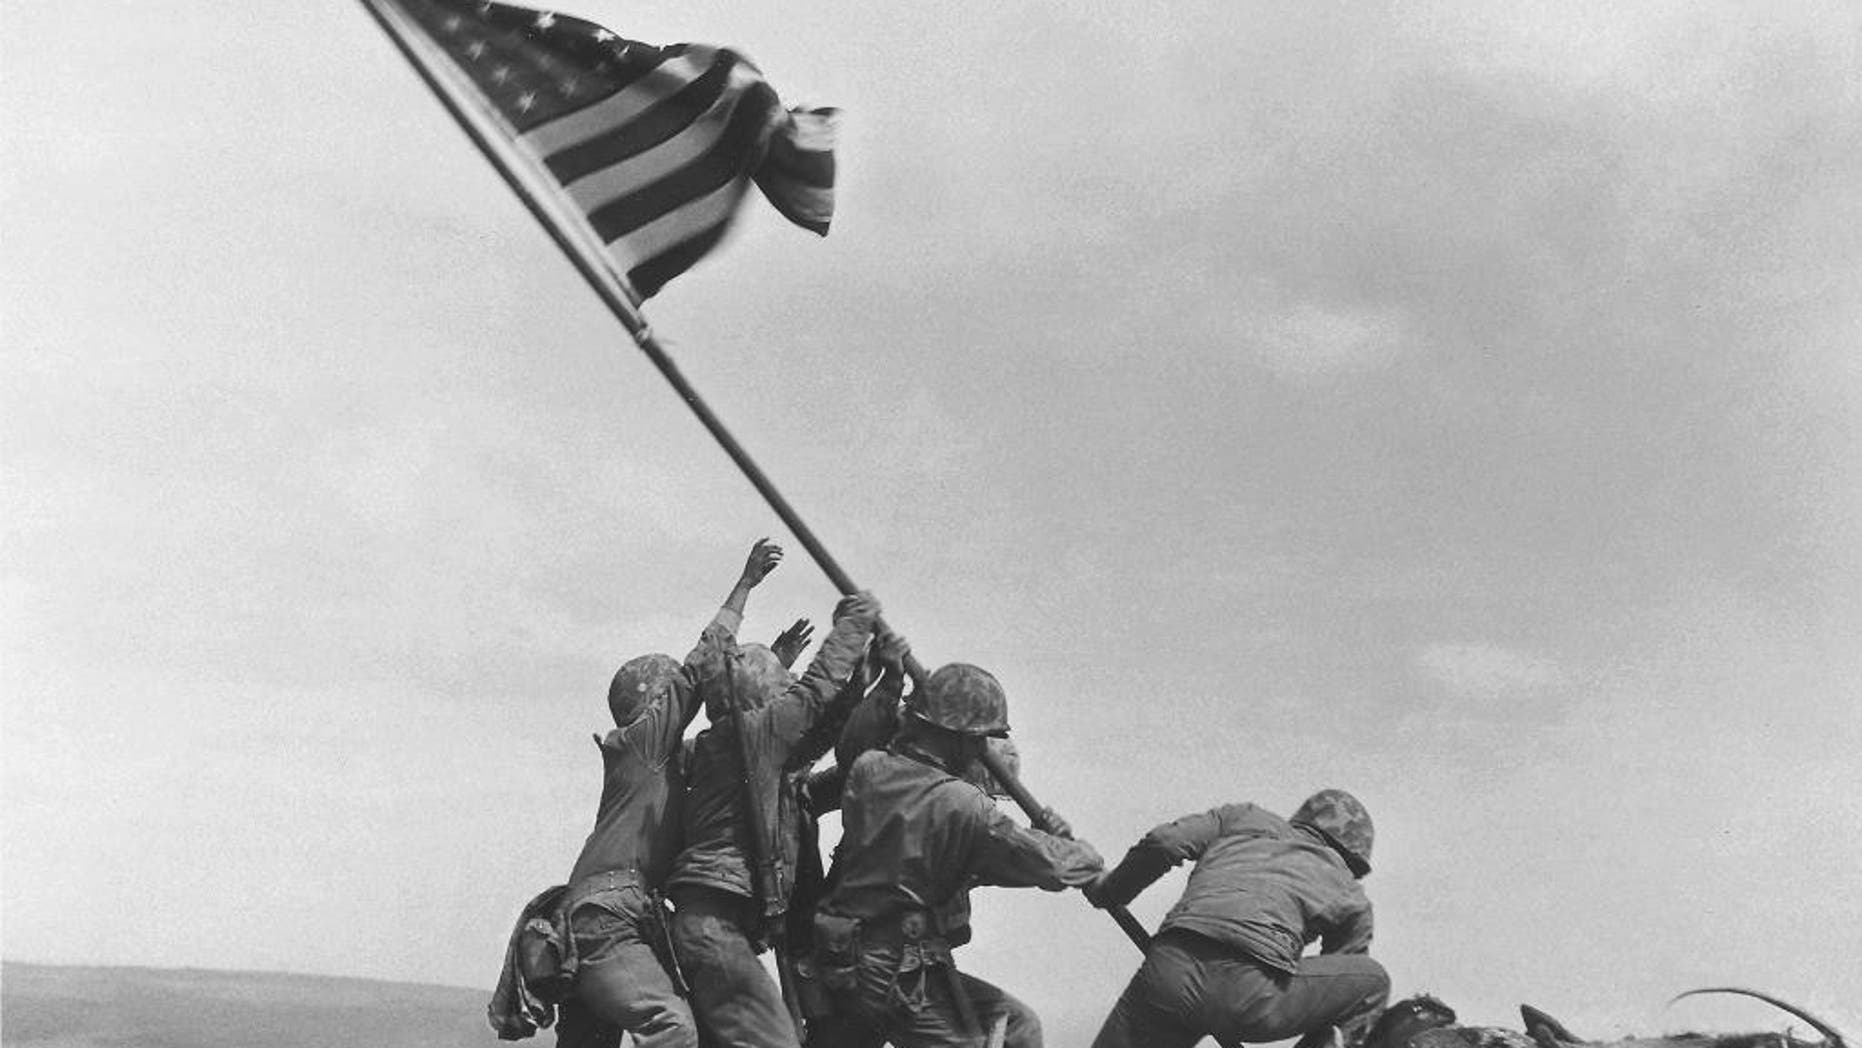 FILE - In this Feb 23, 1945 file photo, U.S. Marines of the 28th Regiment, 5th Division, raise the American flag atop Mt. Suribachi, Iwo Jima, Japan. The Marines Corps announced Thursday, June 23, 2016, that one of the six men long identified in the iconic World War II photograph was actually not in the image. A panel found that Private First Class Harold Schultz, of Detroit, was in the photo and that Navy Pharmacist's Mate 2nd Class John Bradley wasn't in the image. Bradley had participated in an earlier flag-raising on Mount Suribachi. (AP Photo/Joe Rosenthal, File)